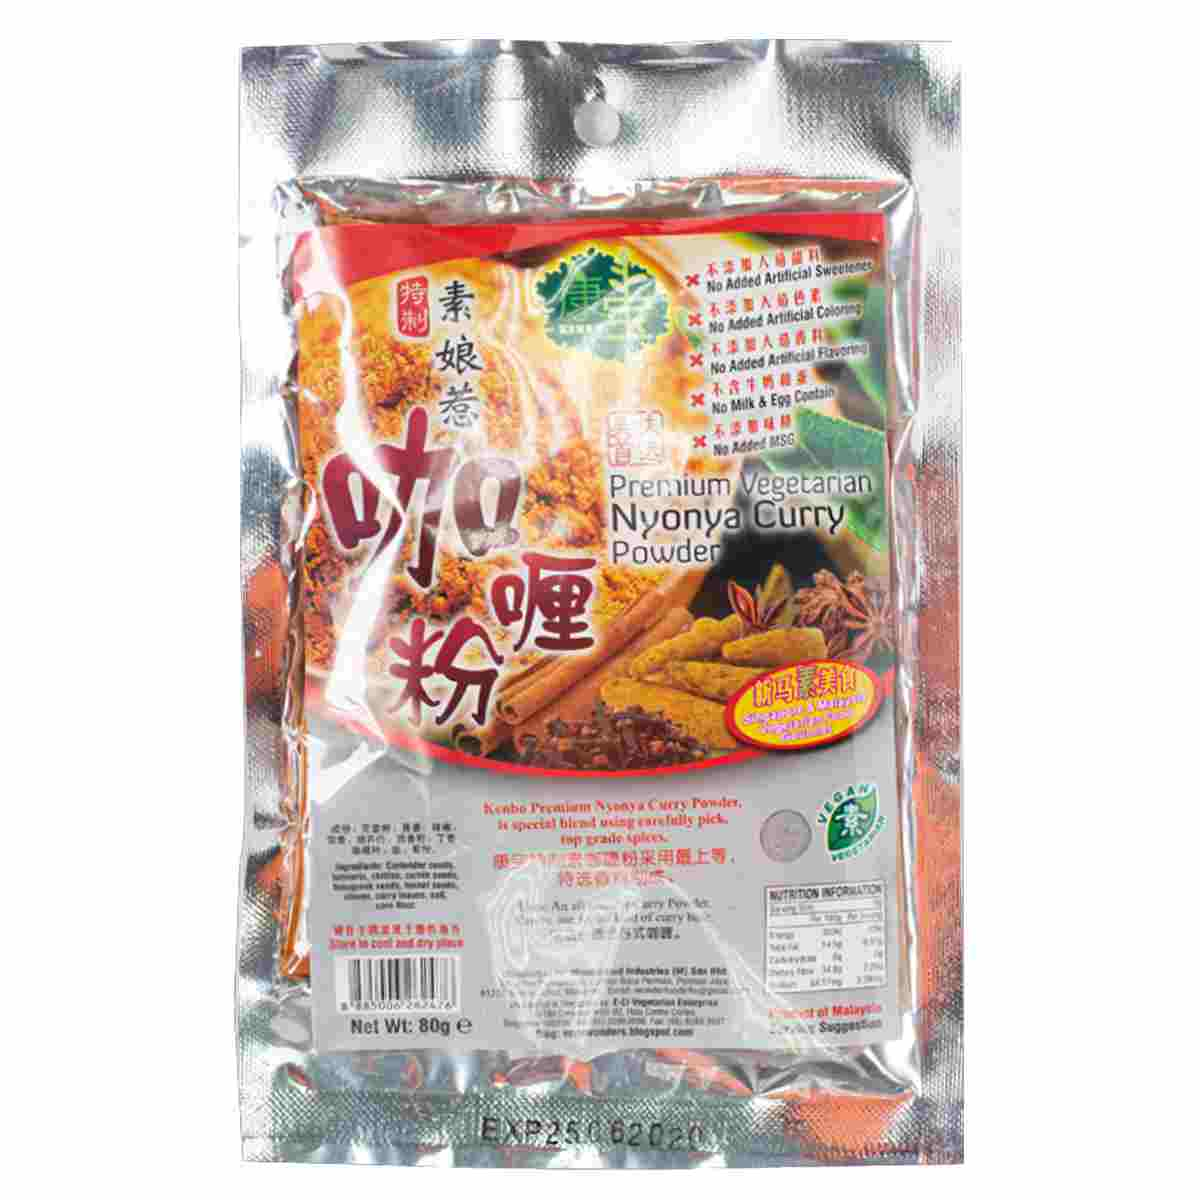 Image Kenbo Nyonya Curry Powder 康宝-娘惹咖喱粉  80grams